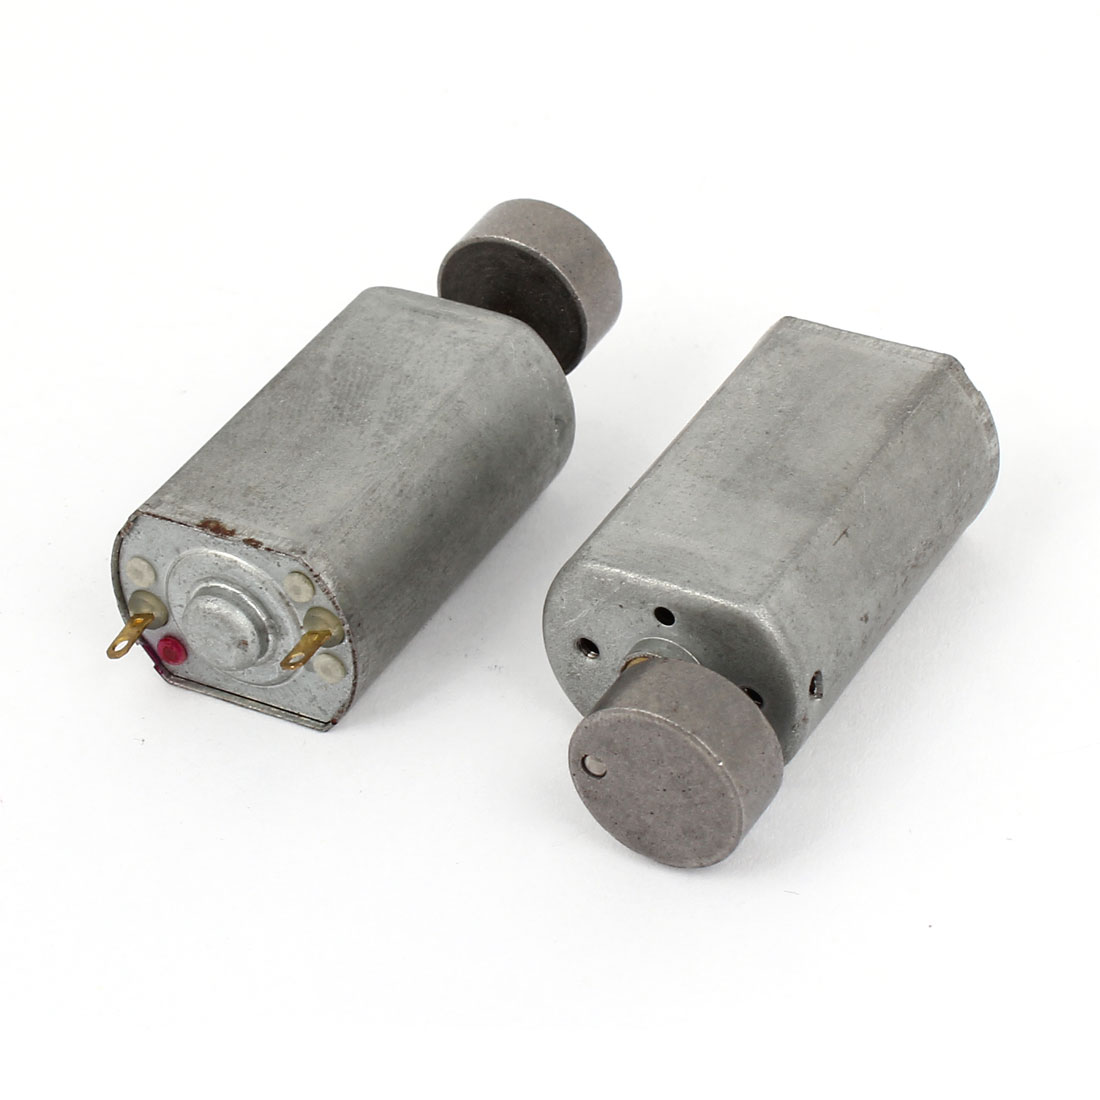 2pcs JFF-180 DC 1.5-6V 22400RPM No Load Speed 2mm Dia Drive Shaft Micro Vibration Motor